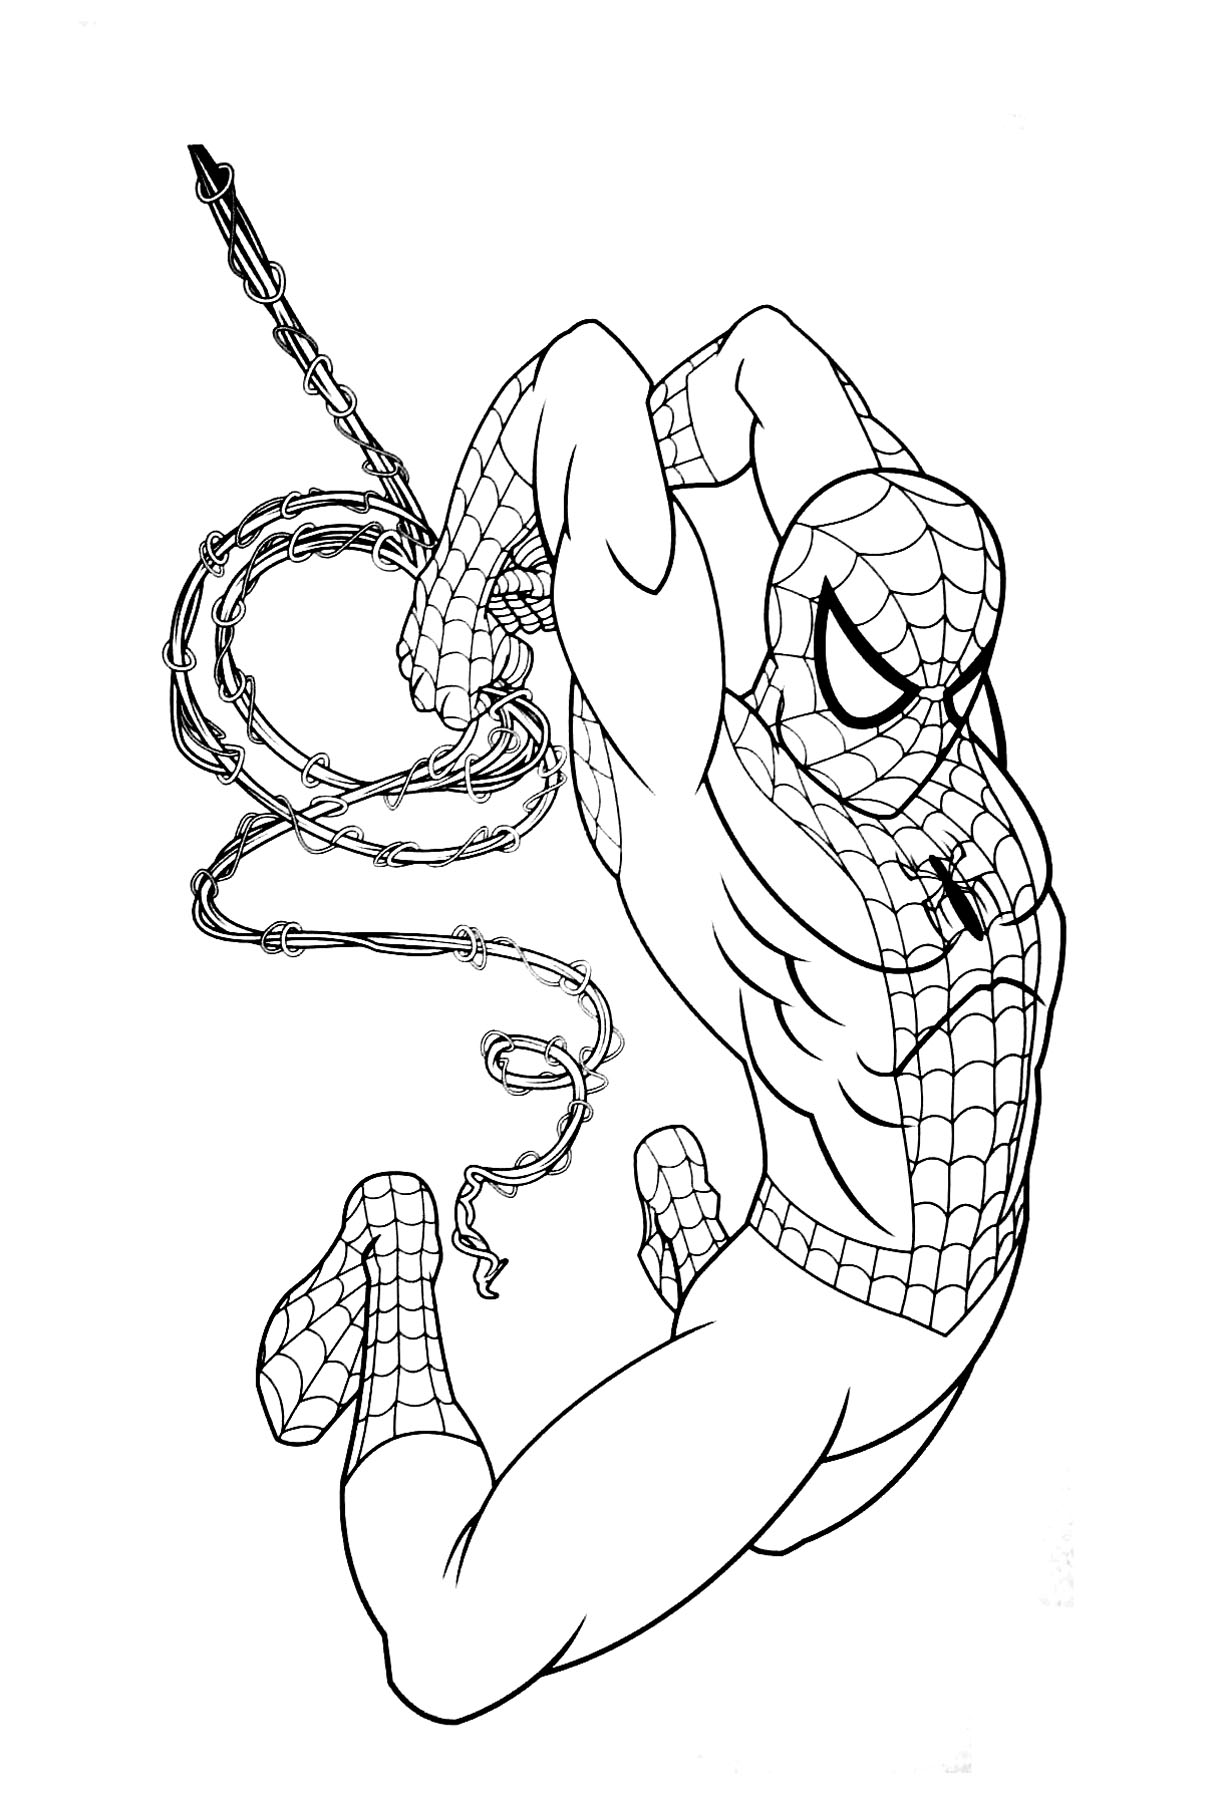 Coloriage De Spiderman Pour Enfants Coloriage Spiderman